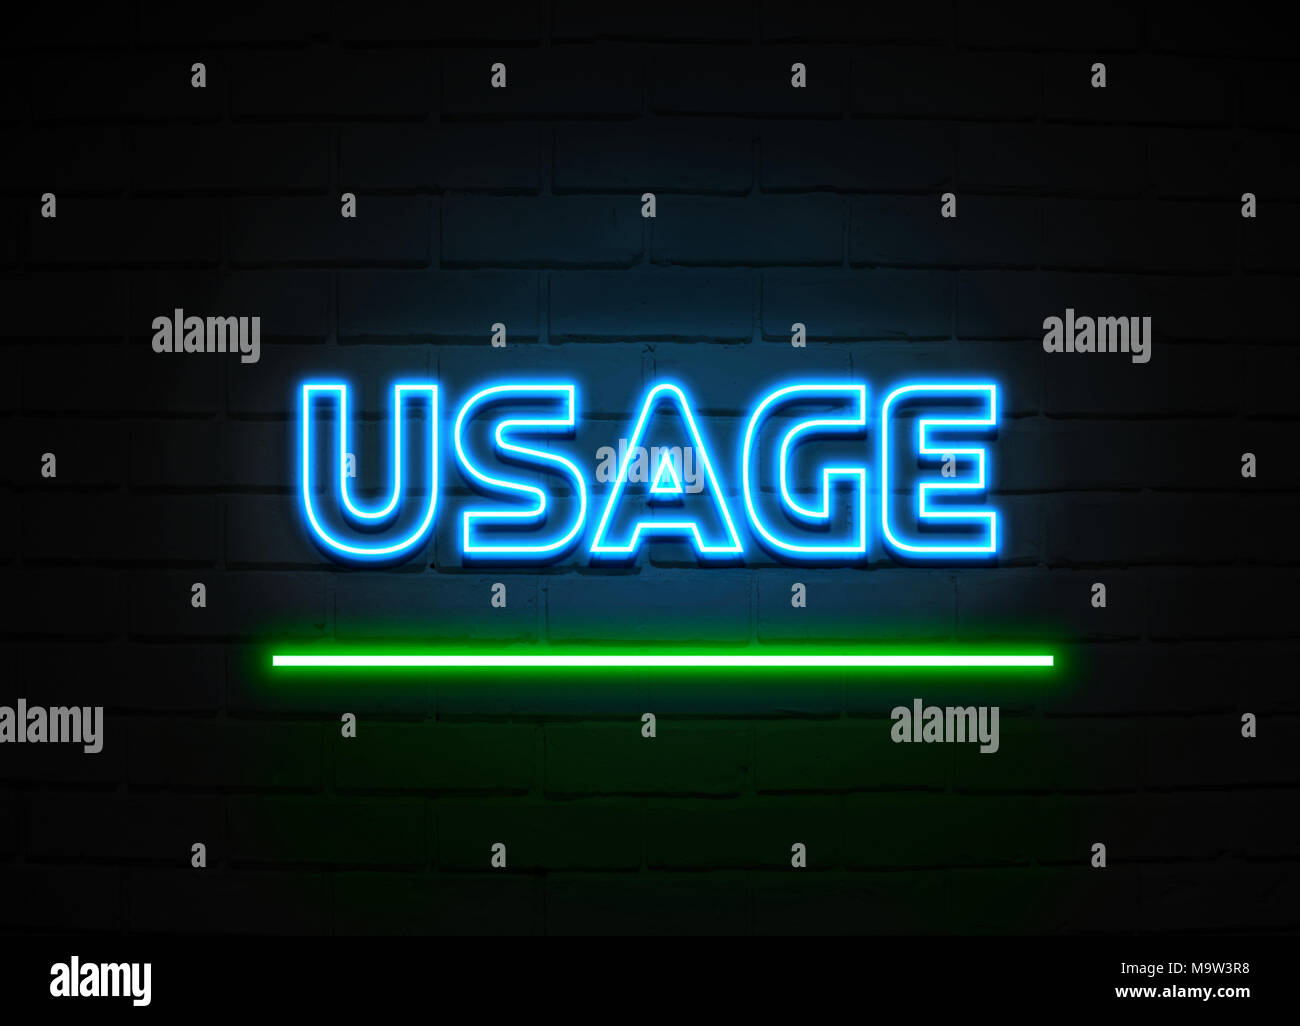 Usage neon sign - Glowing Neon Sign on brickwall wall - 3D rendered royalty free stock illustration. - Stock Image